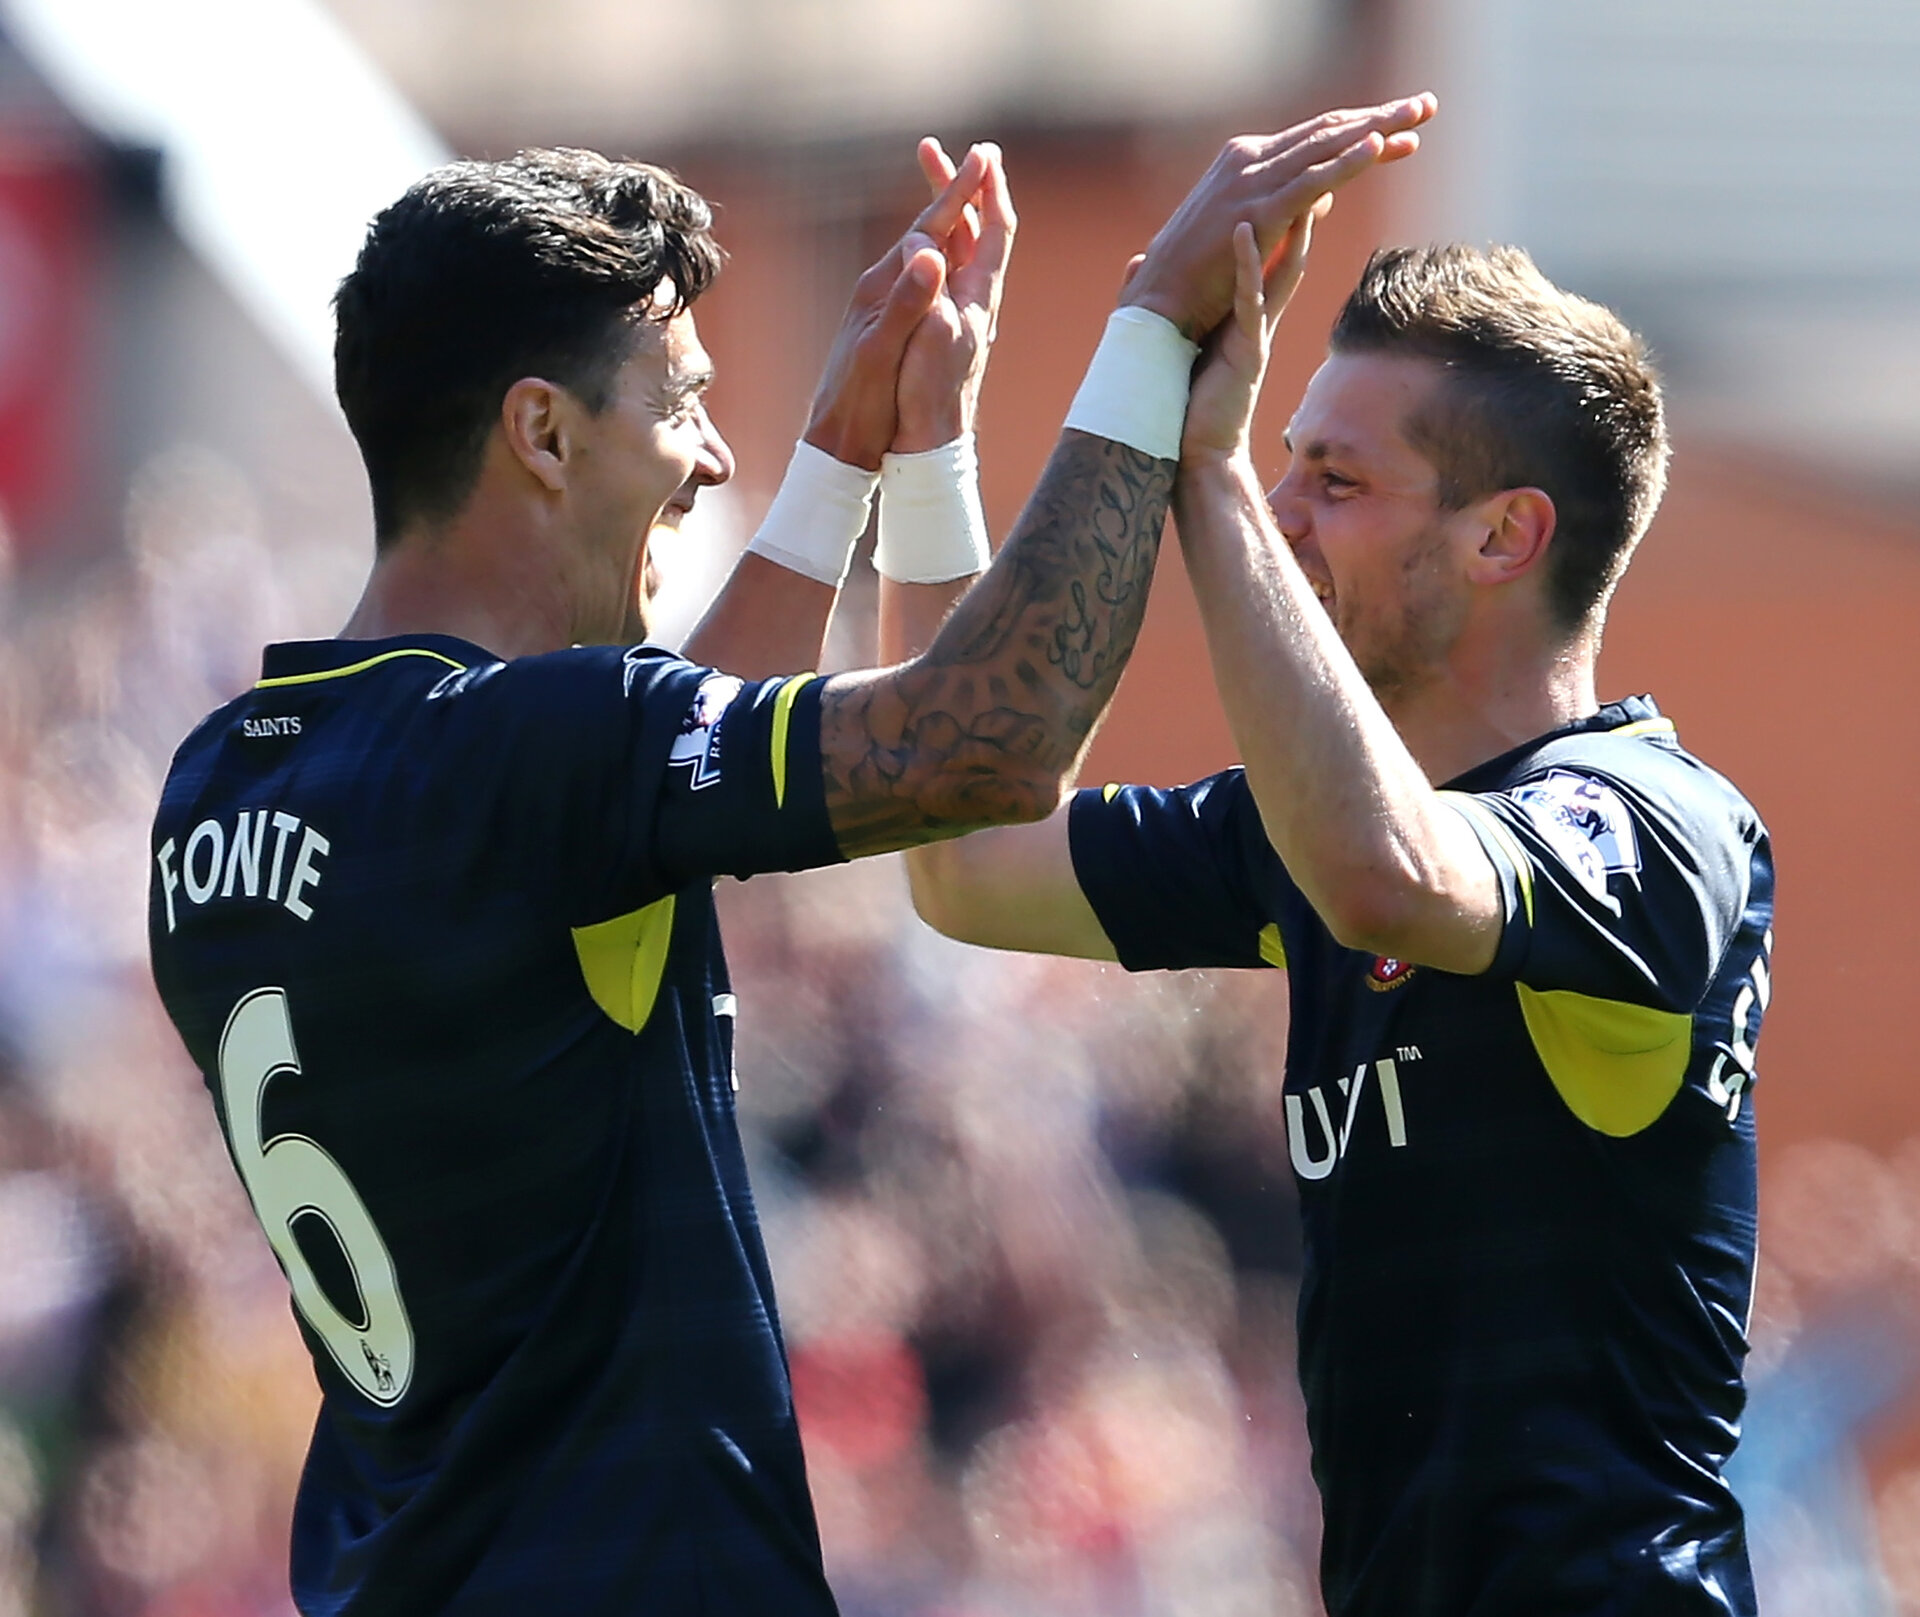 STOKE ON TRENT, ENGLAND - APRIL 18:  Morgan Schneiderlin of Southampton celebrates the first goal with his team-mate Jose Fonte (L) during the Barclays Premier League match between Stoke City and Southampton at the Britannia Stadium on April 18, 2015 in Stoke on Trent, England.  (Photo by Jan Kruger/Getty Images)